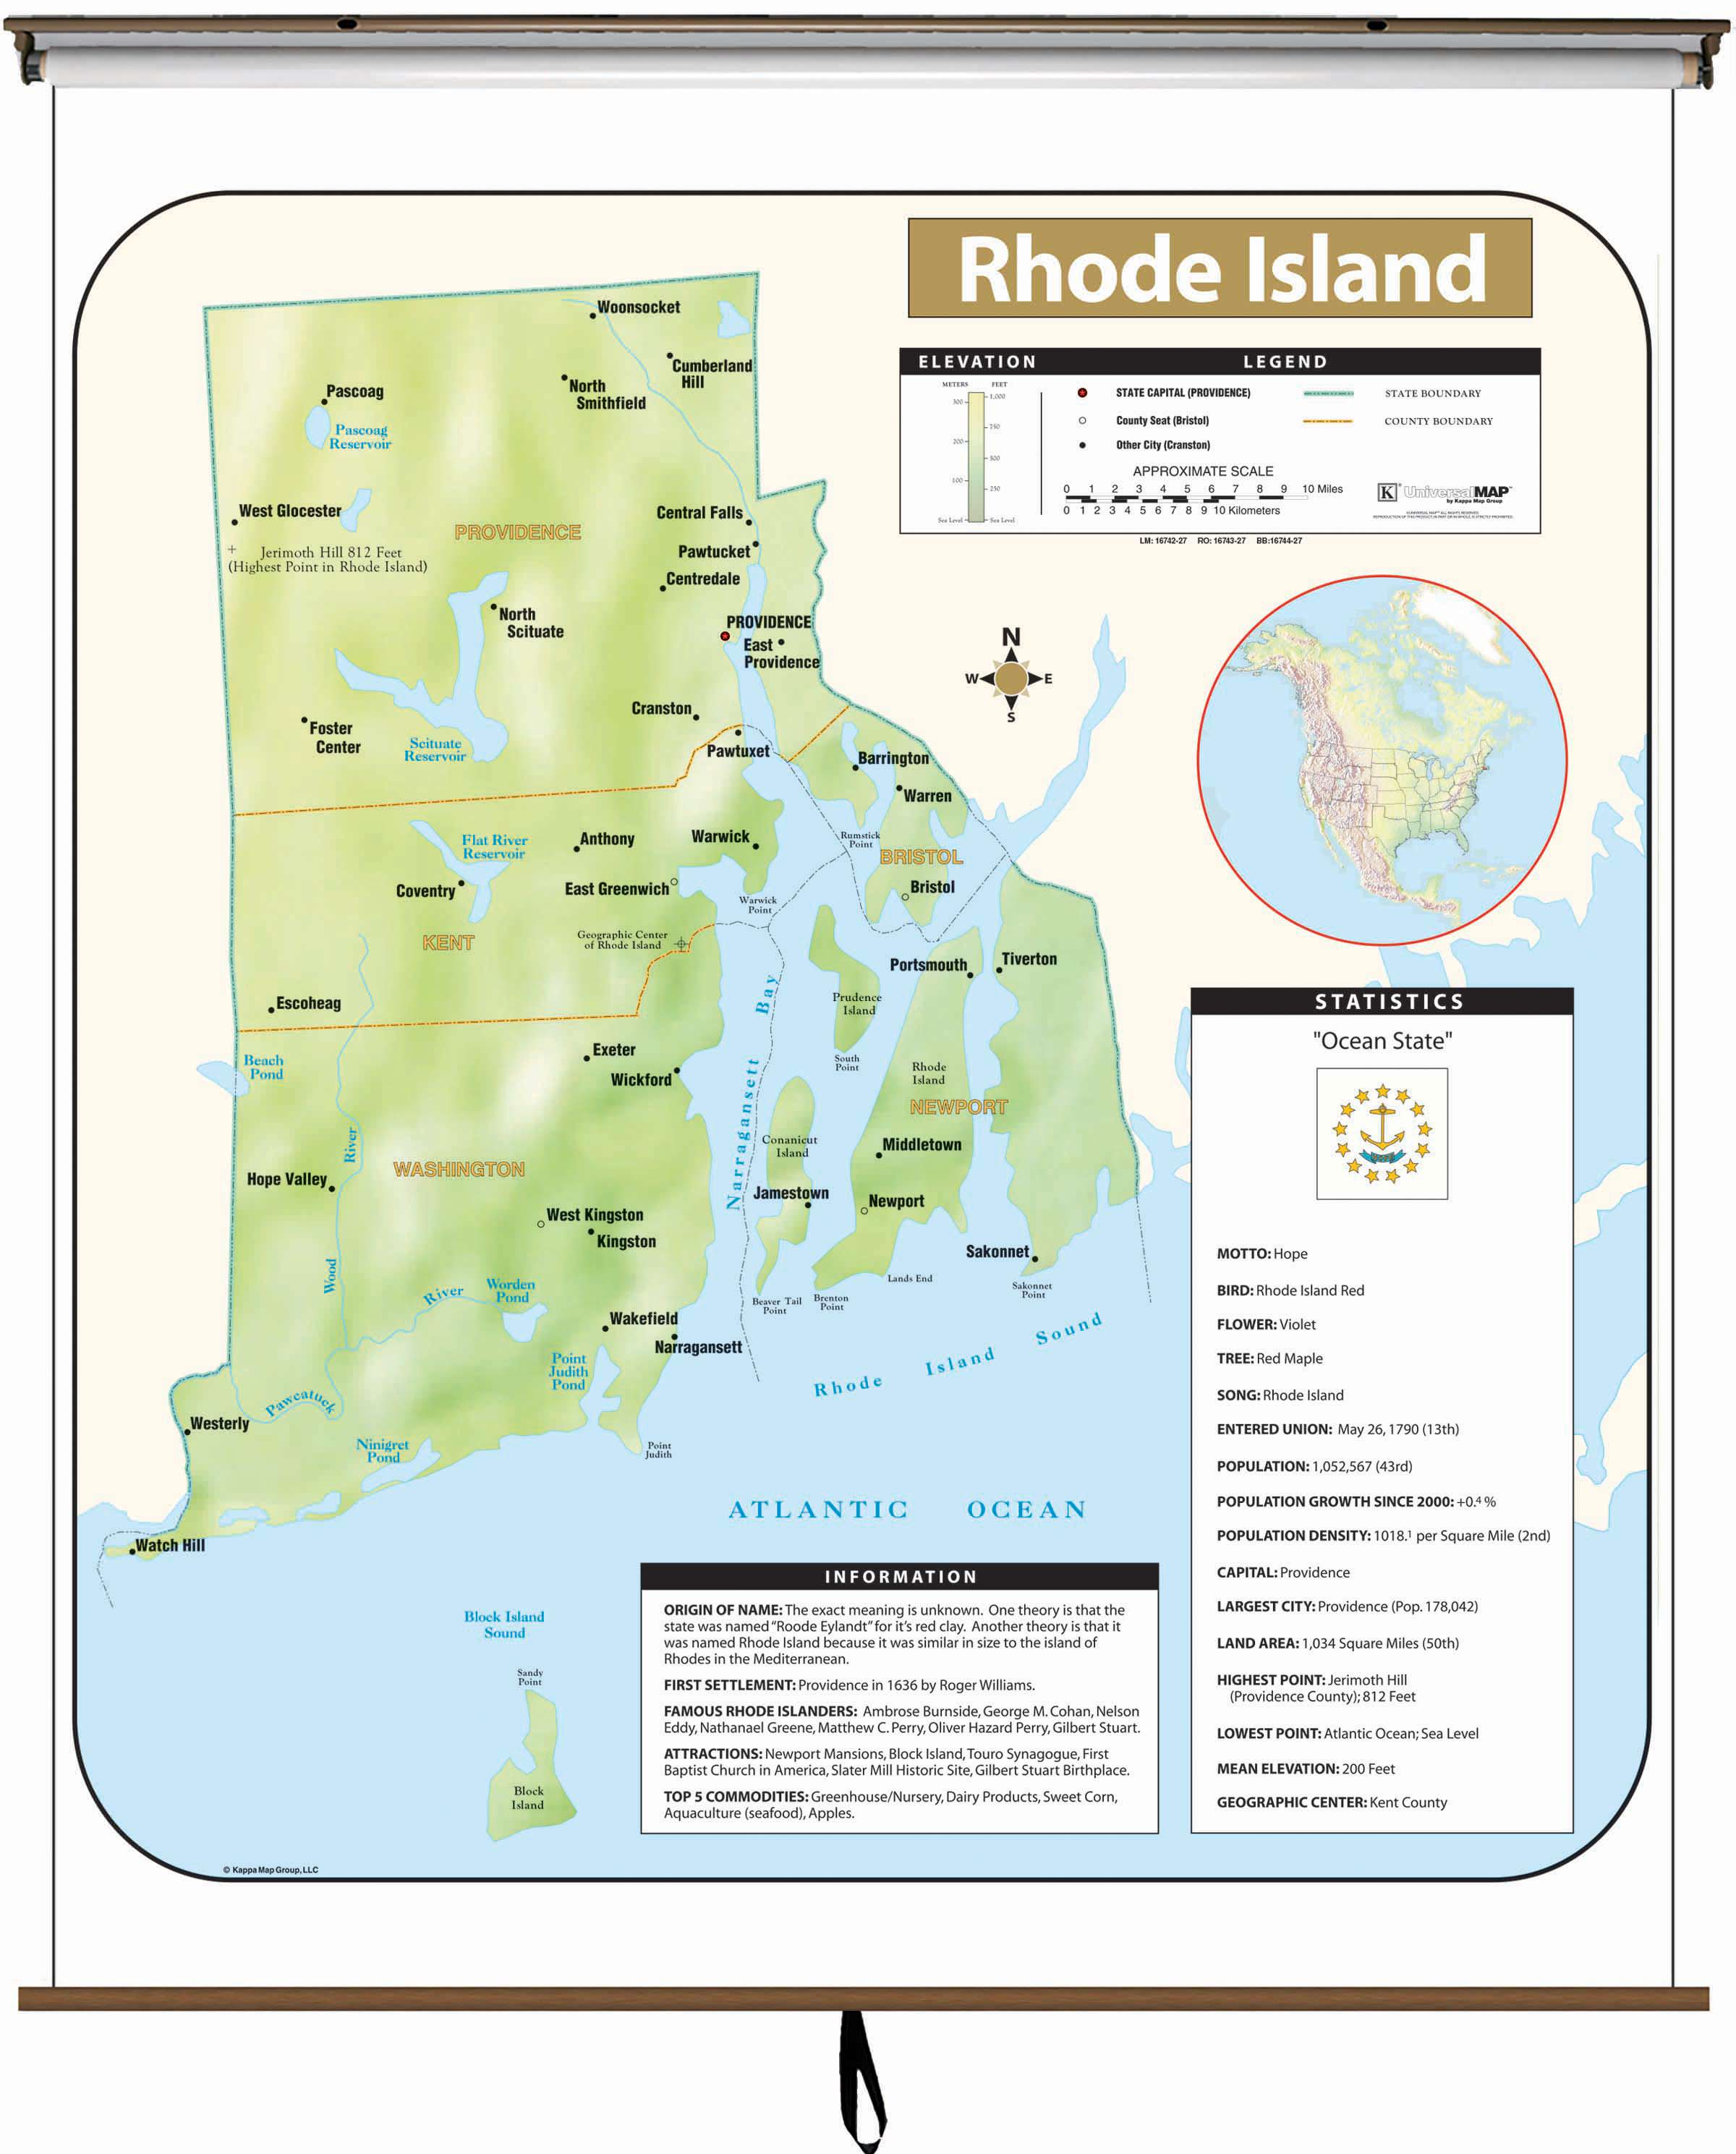 Rhode Island Large Scale Shaded Relief Wall Map on Roller with ...